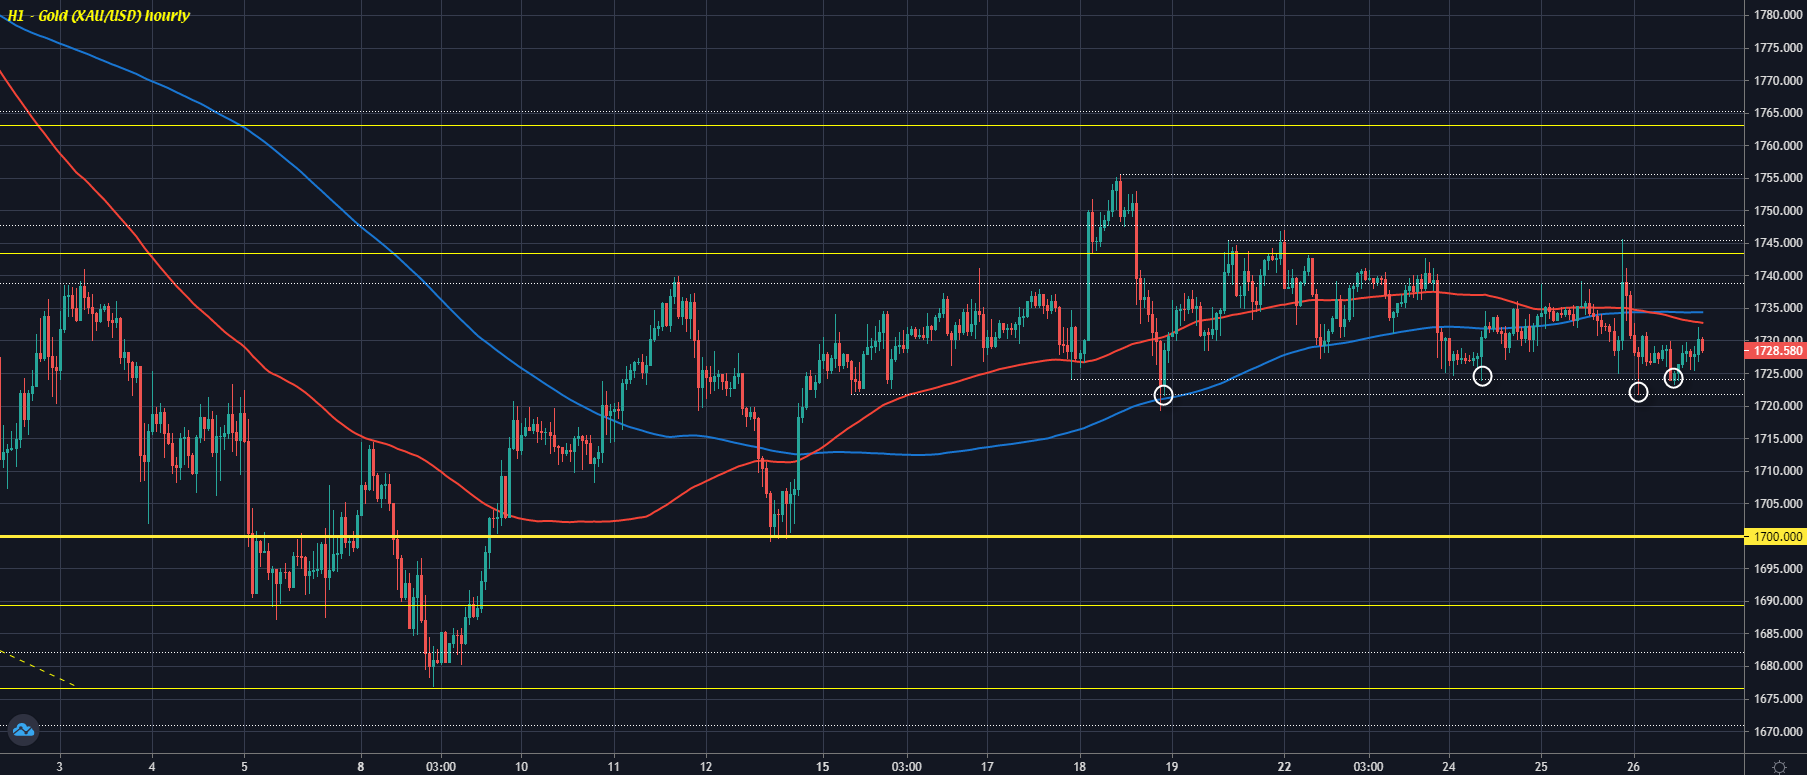 Gold continues lackluster form this week, what's next?